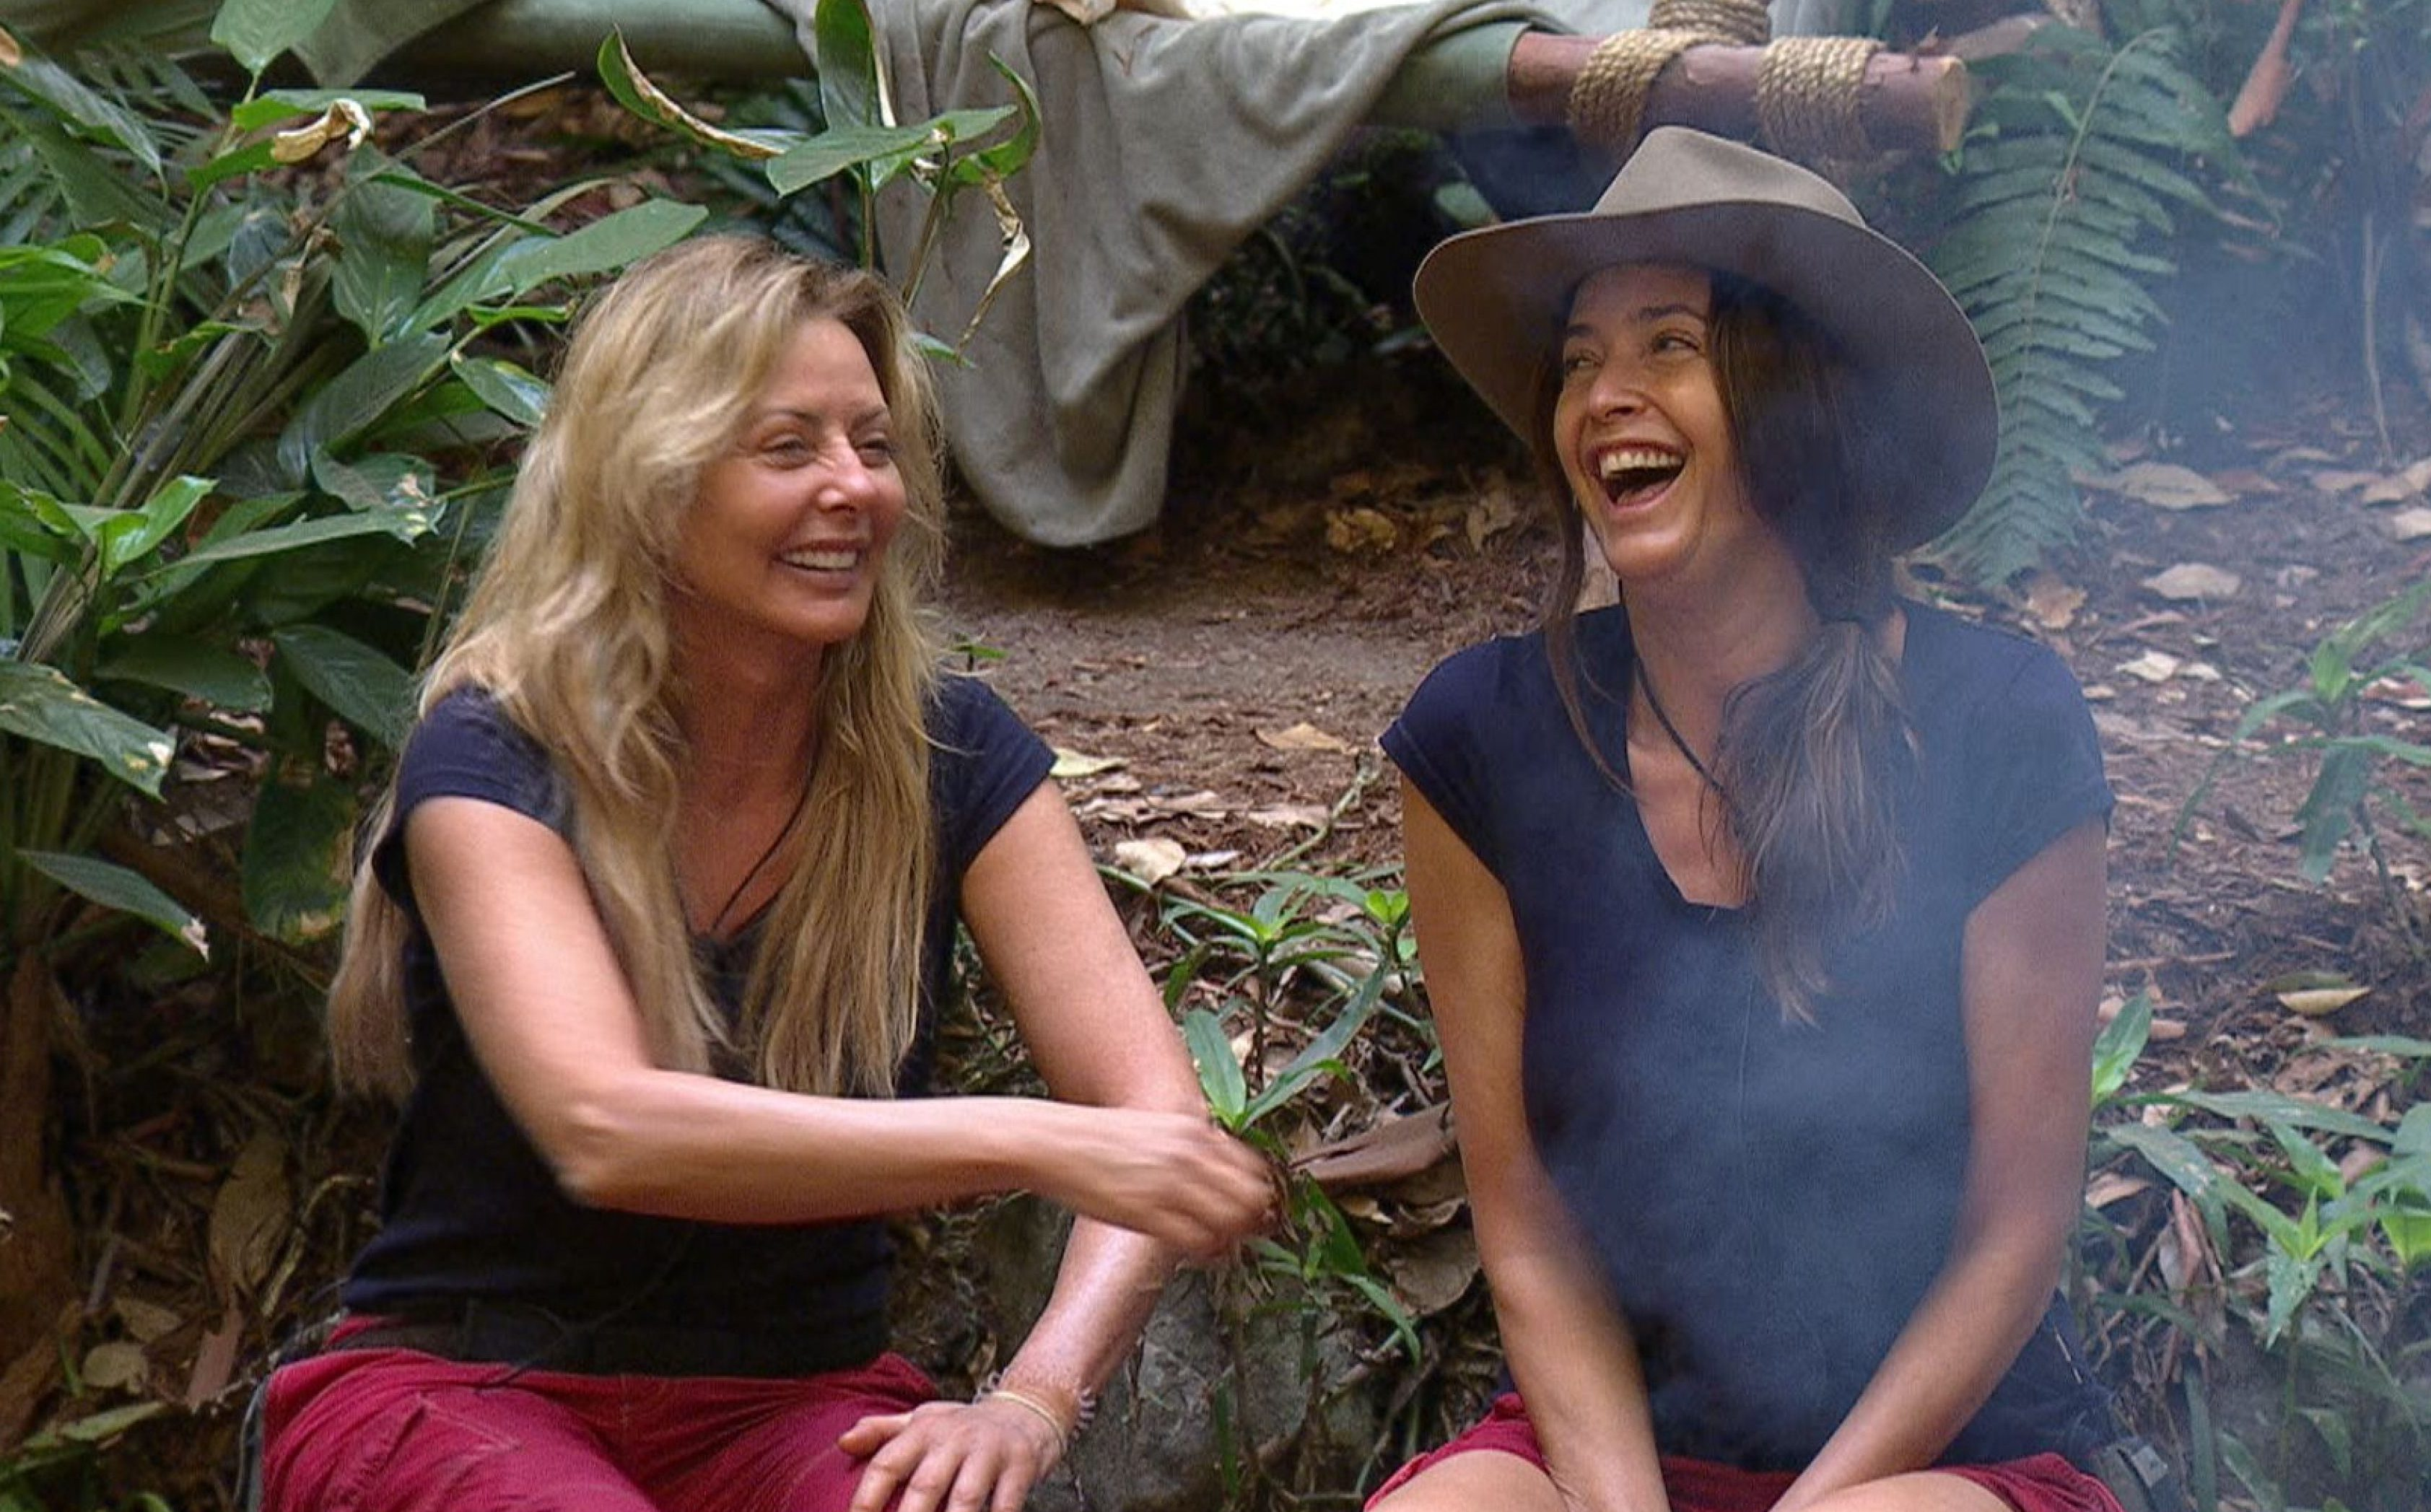 ***EMBARGO, NOT TO BE USED BEFORE 22:30 GMT, 25 Nov 2016 - EDITORIAL USE ONLY - NO MERCHANDISING*** Mandatory Credit: Photo by ITV/REX/Shutterstock (7523829eo) Carol Vorderman tells a tale of nipple tassles to Lisa Snowdon 'I'm a Celebrity...Get Me Out of Here!' TV Show, Australia - 25 Nov 2016